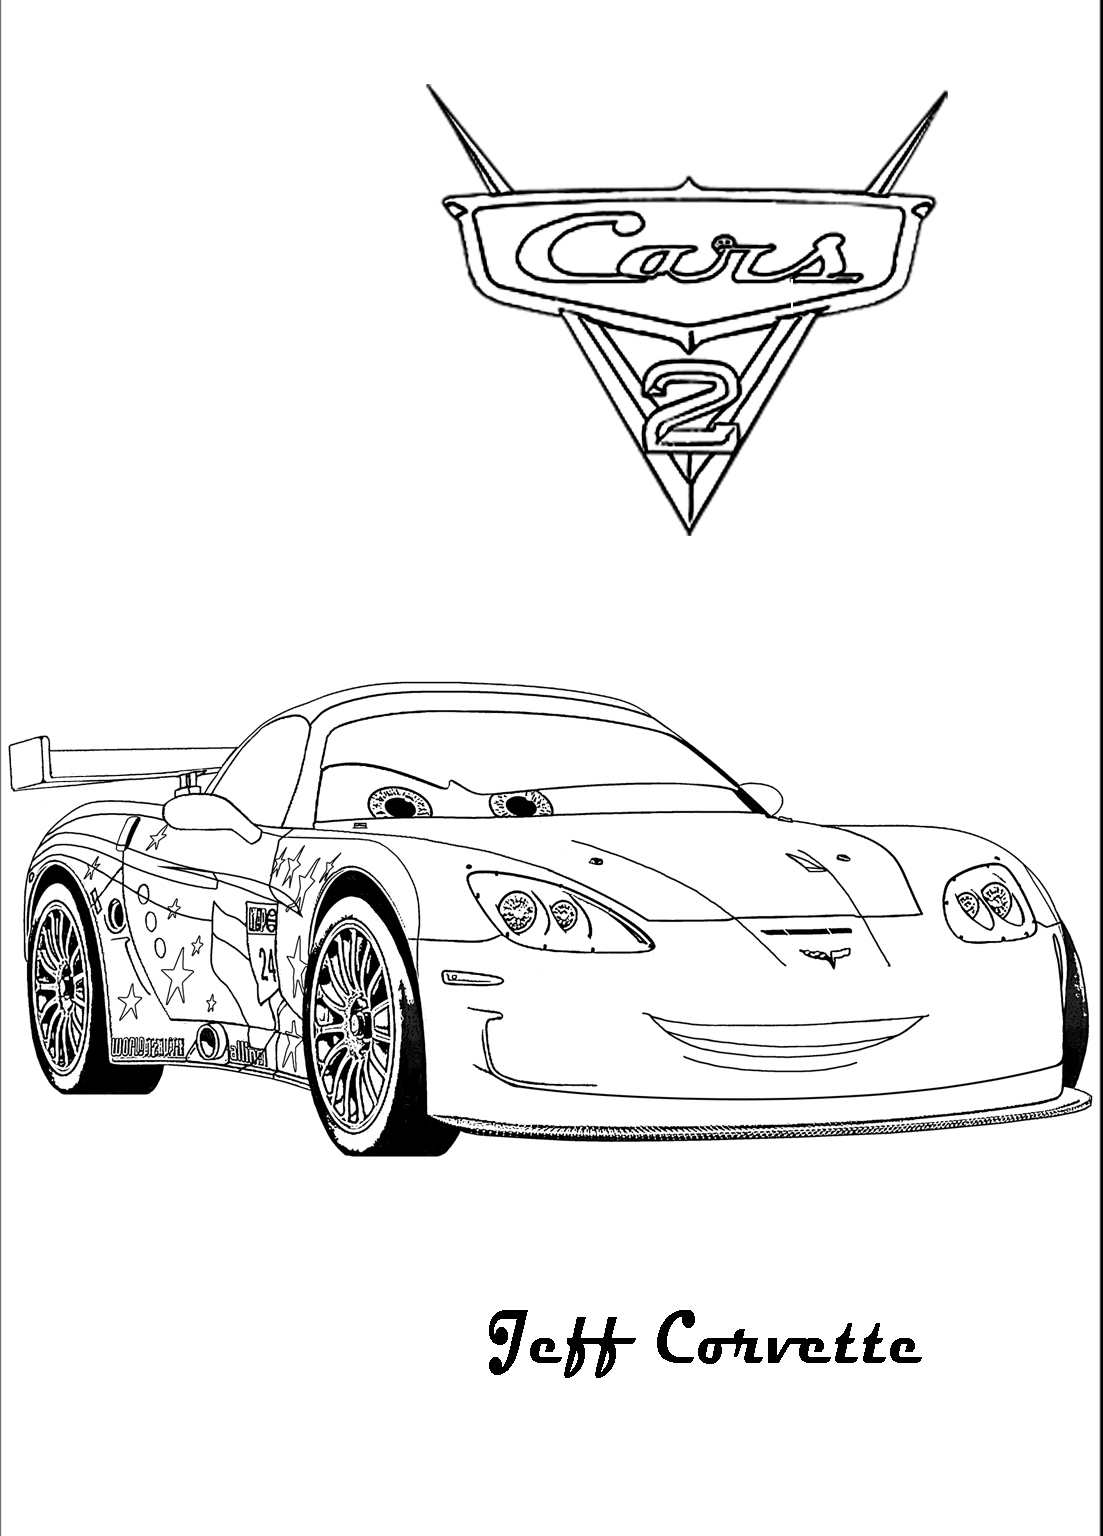 Jeff Corvette din Cars 2